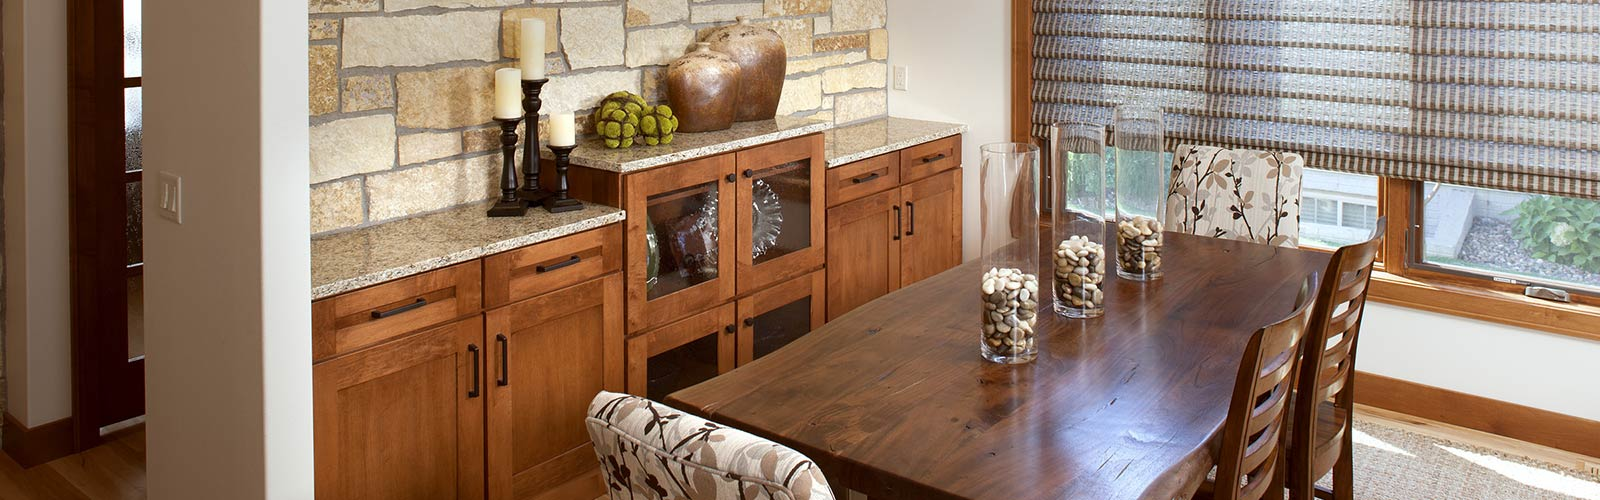 Interior The Cabinet Store cabinet store cabinets countertops and accessories